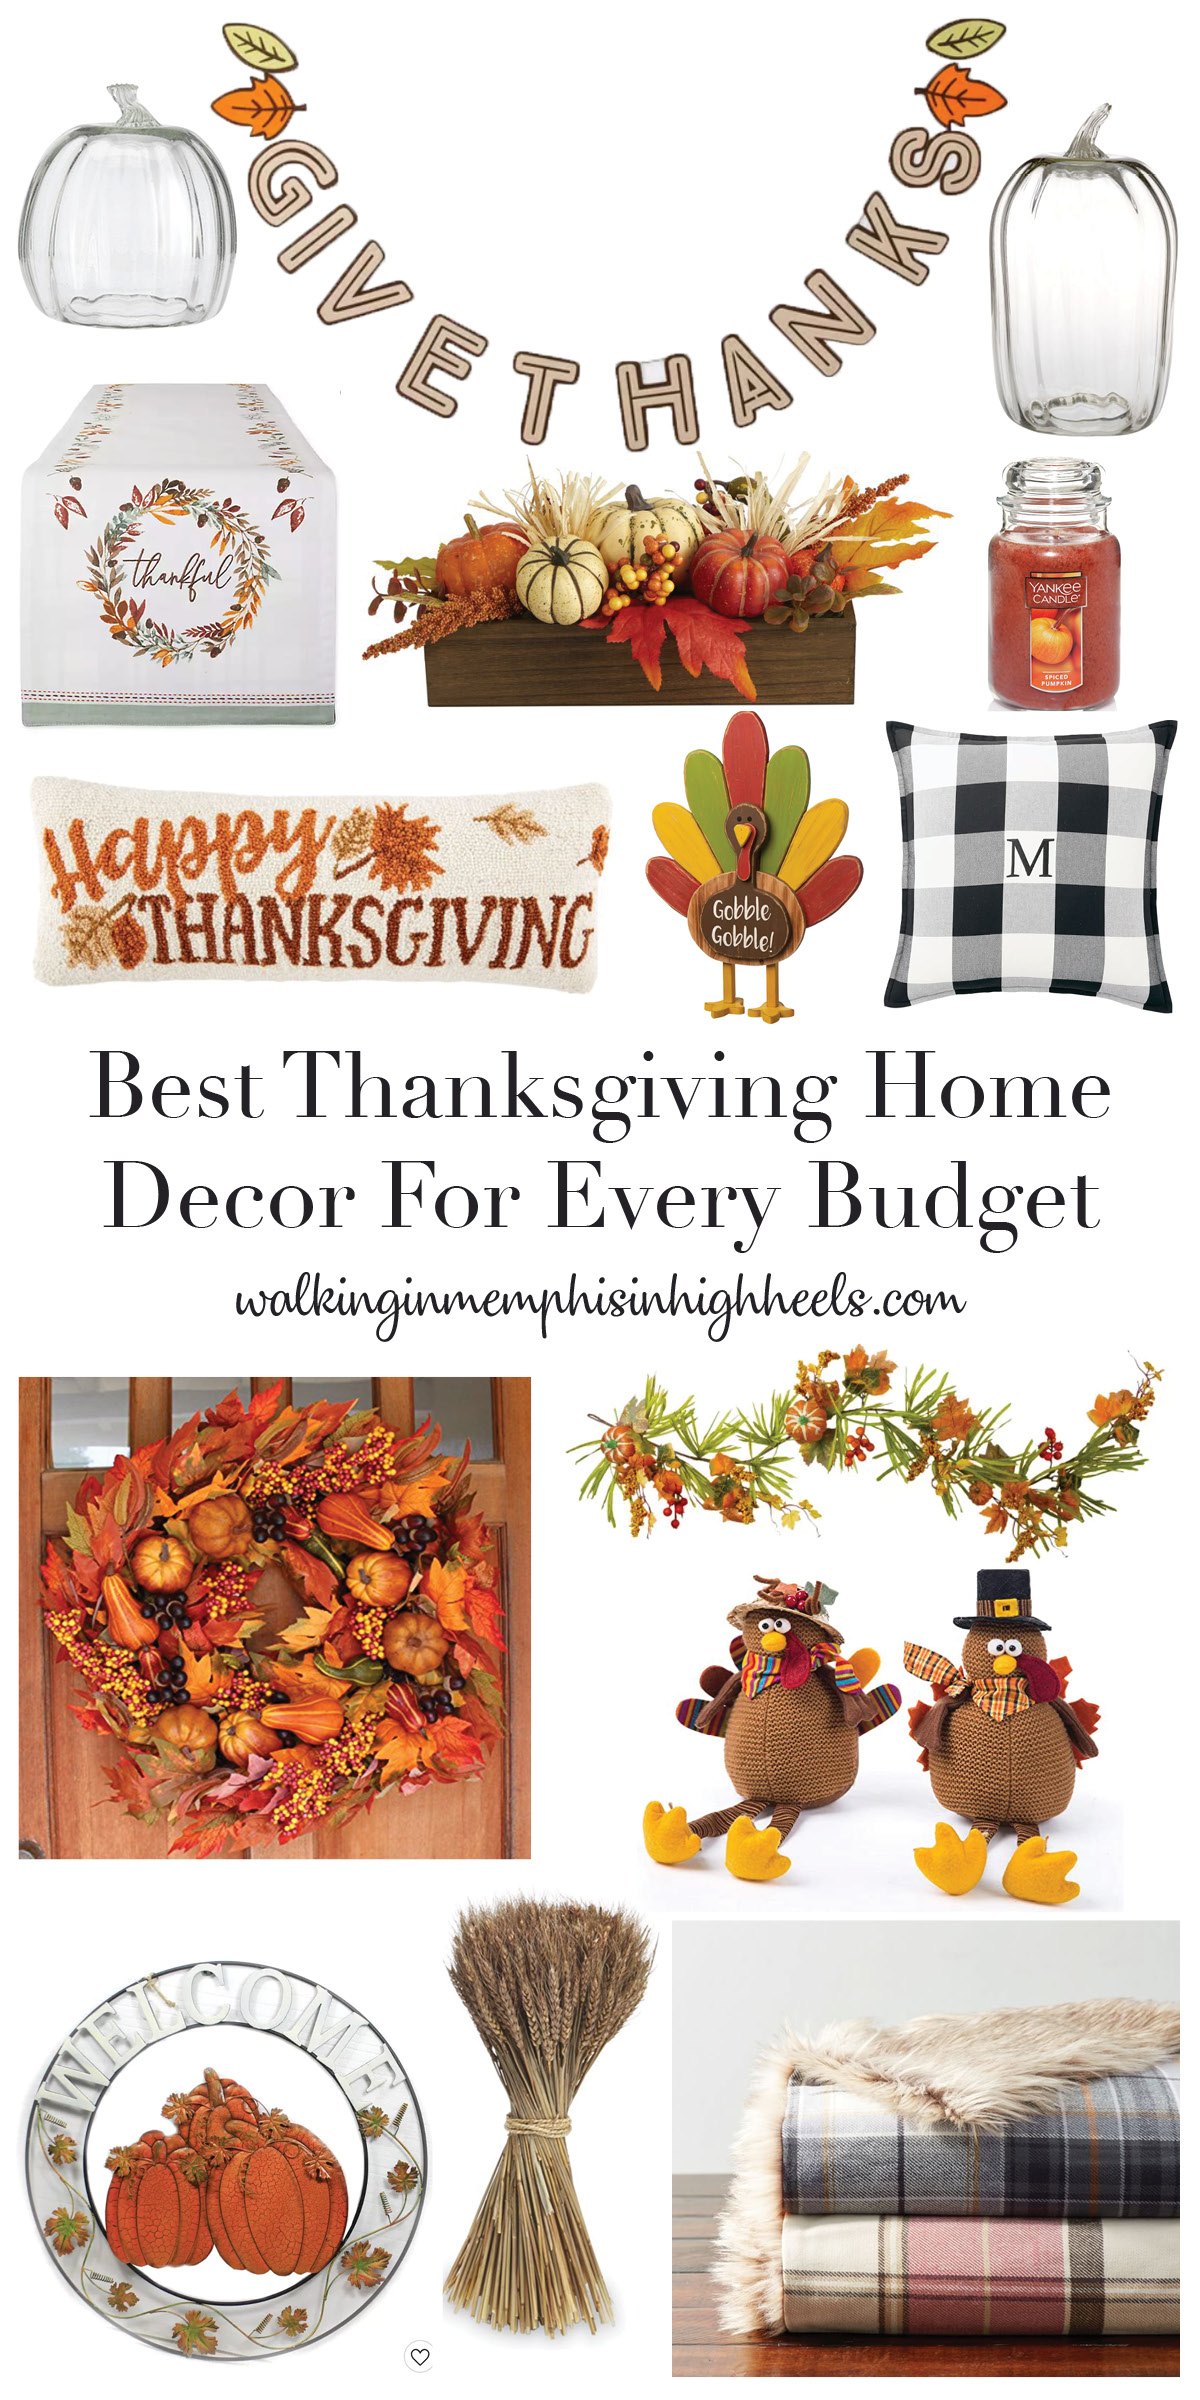 The Best Thanksgiving Home Decor for Your House